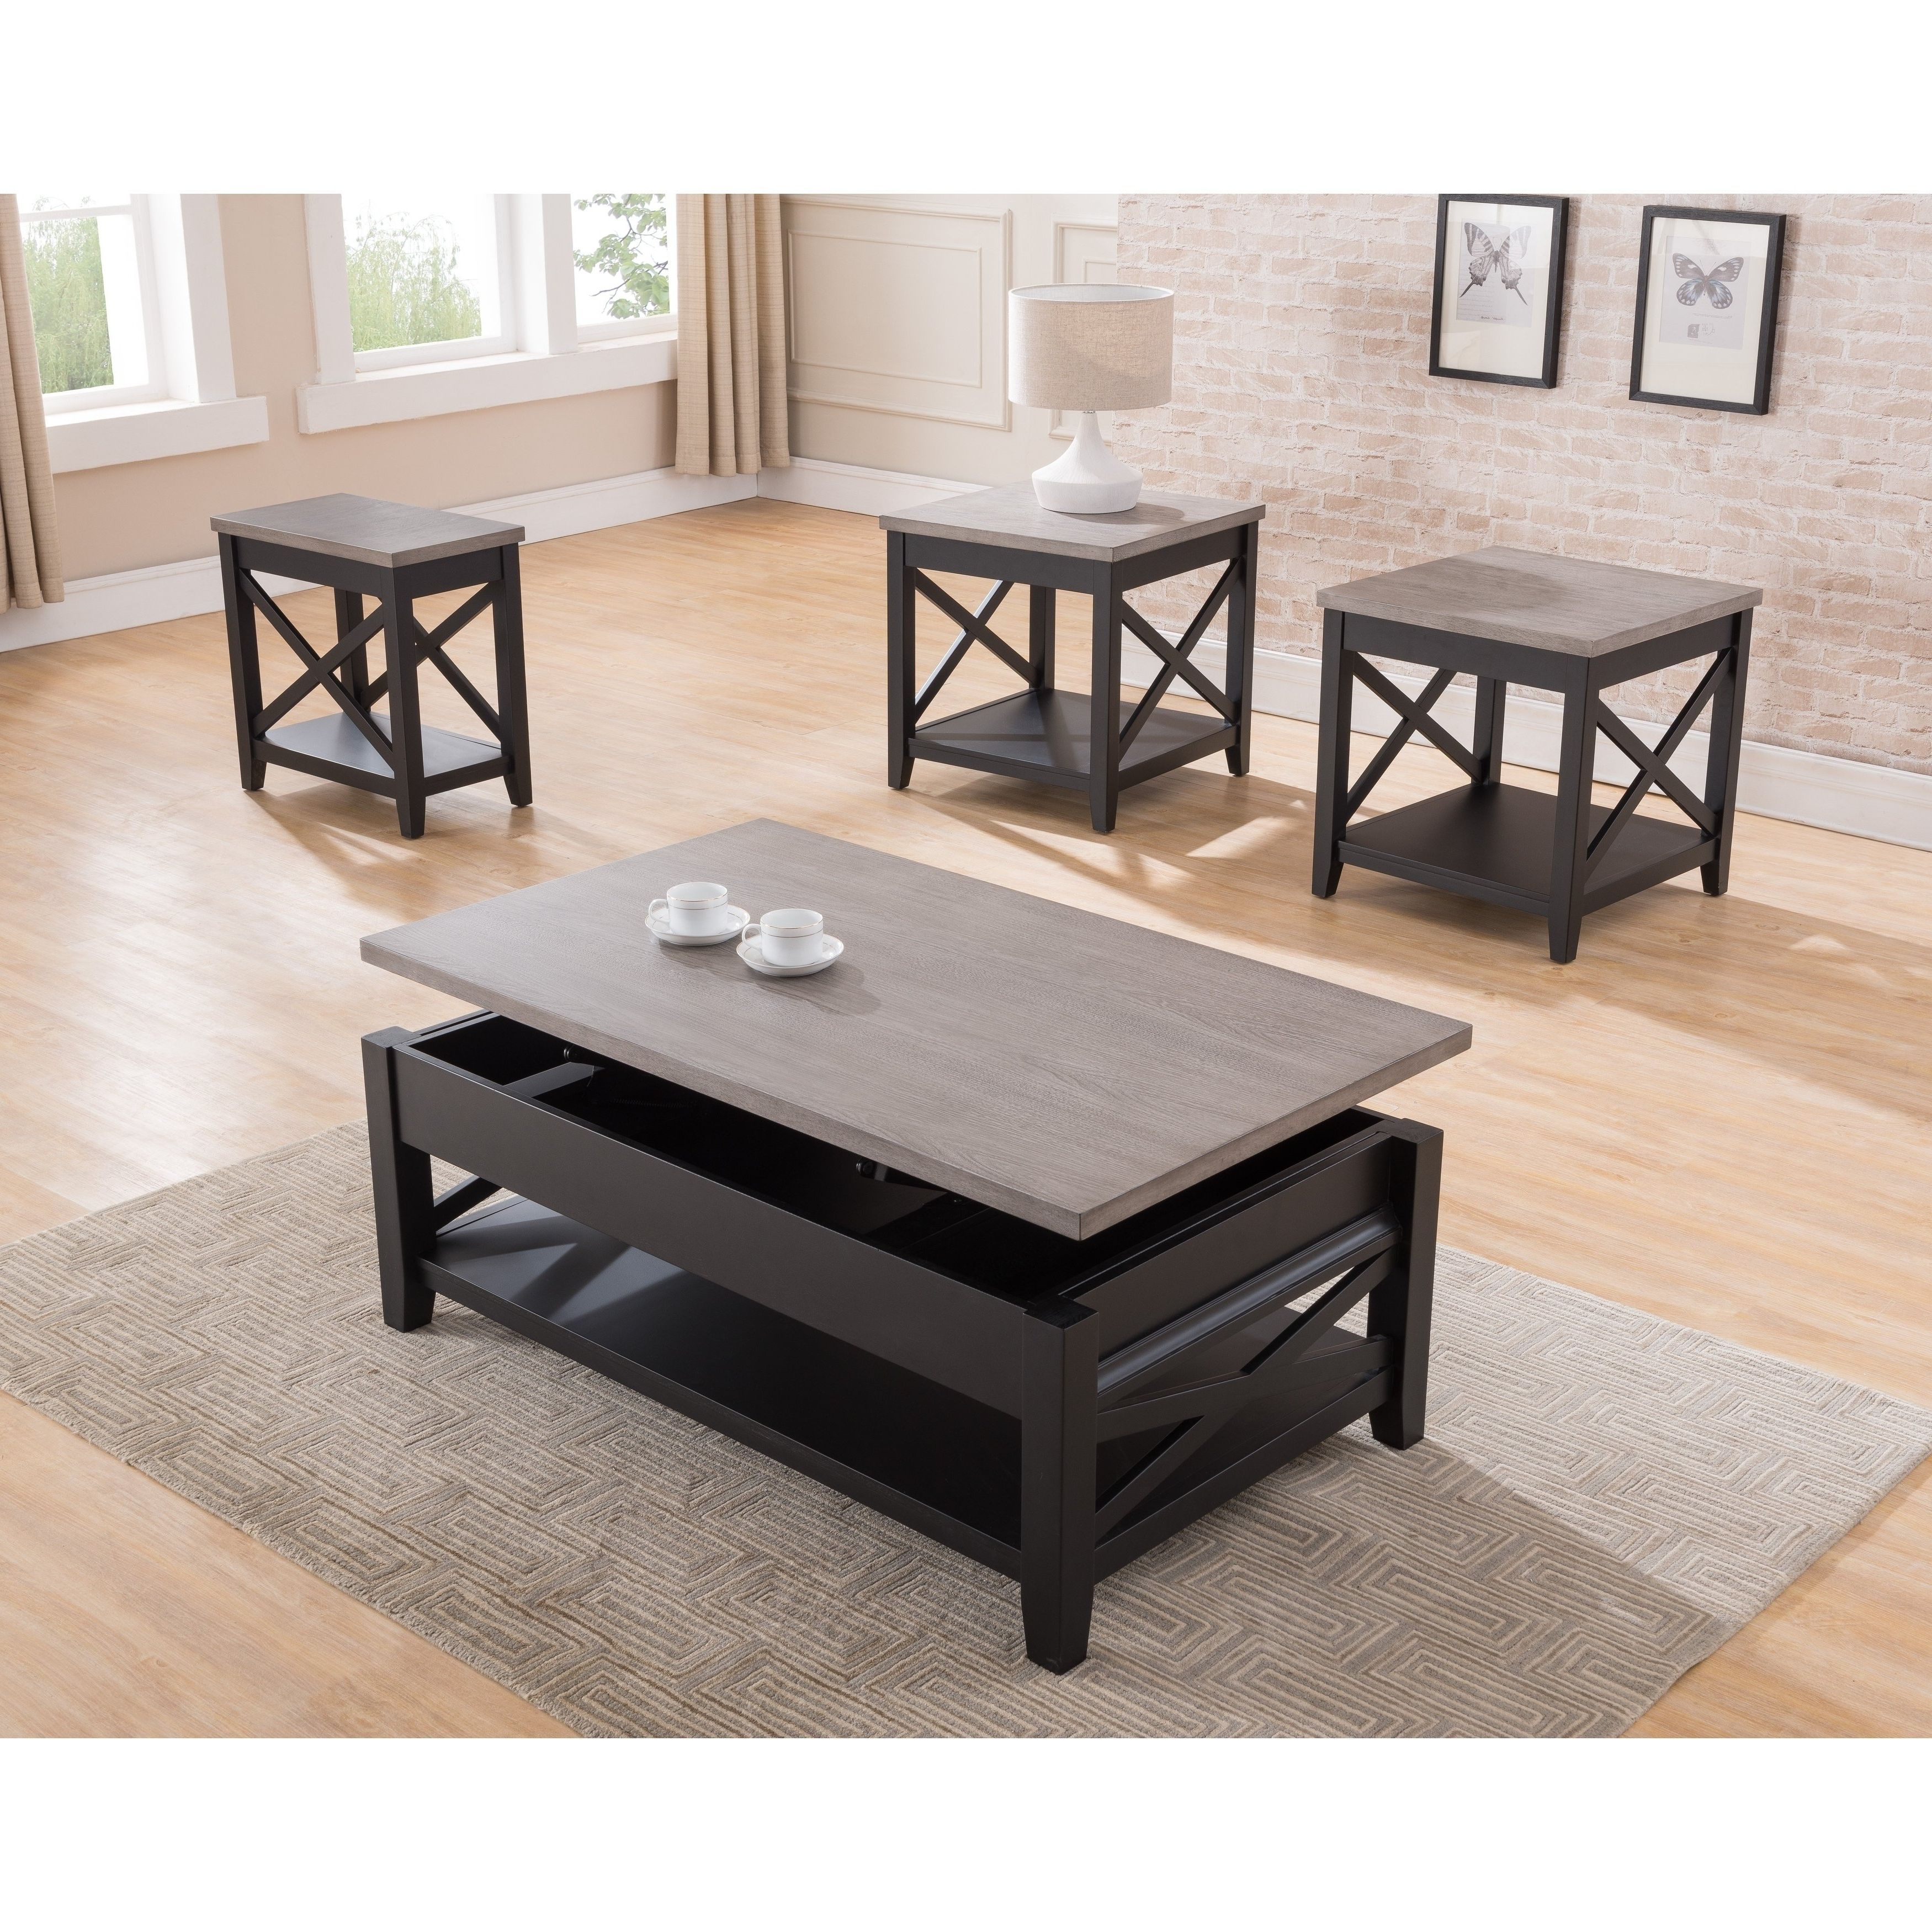 Current Grant Lift Top Cocktail Tables With Casters With Shop Simmons Casegoods Black And Grey Lift Top Cocktail Table – Free (View 4 of 20)